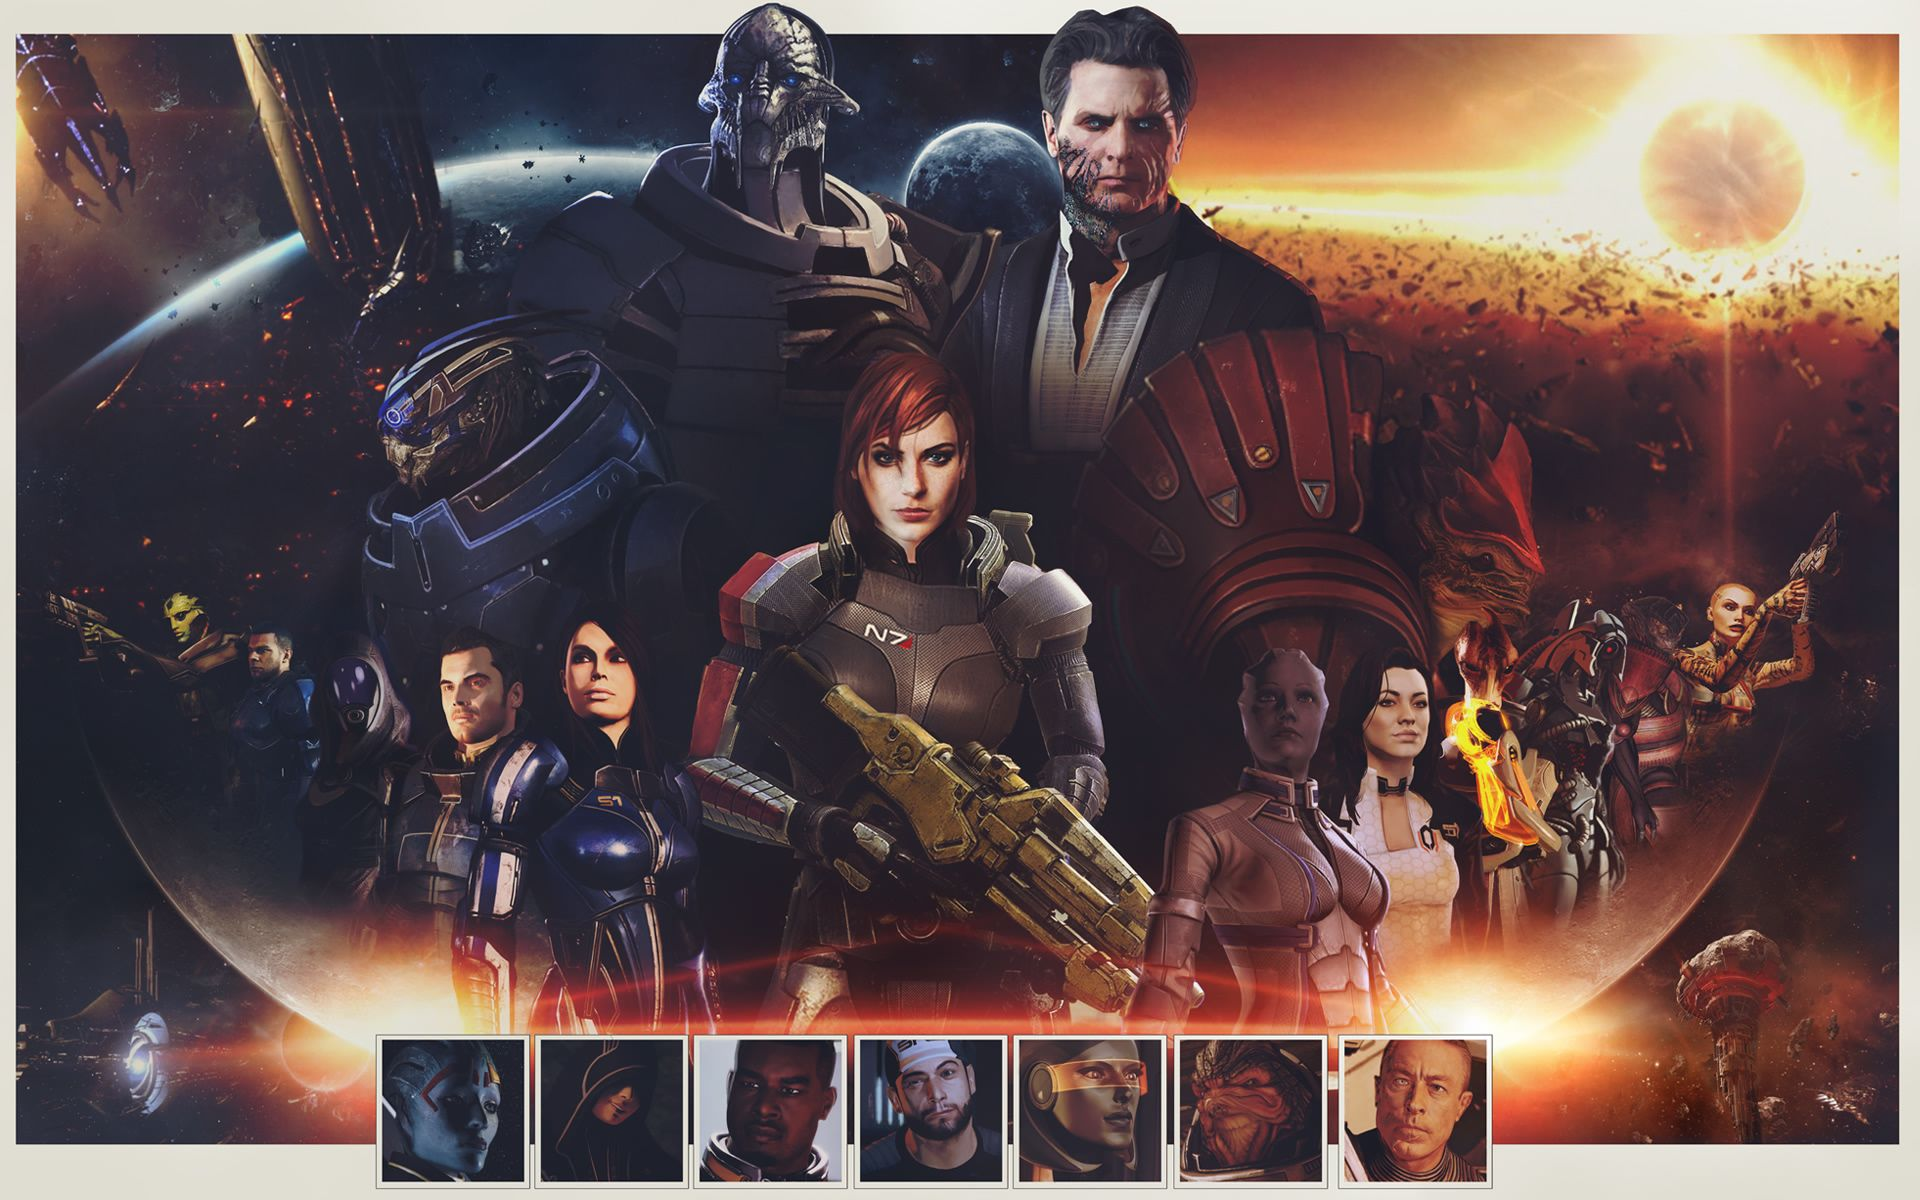 Download Wallpaper Femshep Zaeed Massani Edi Javik Saren